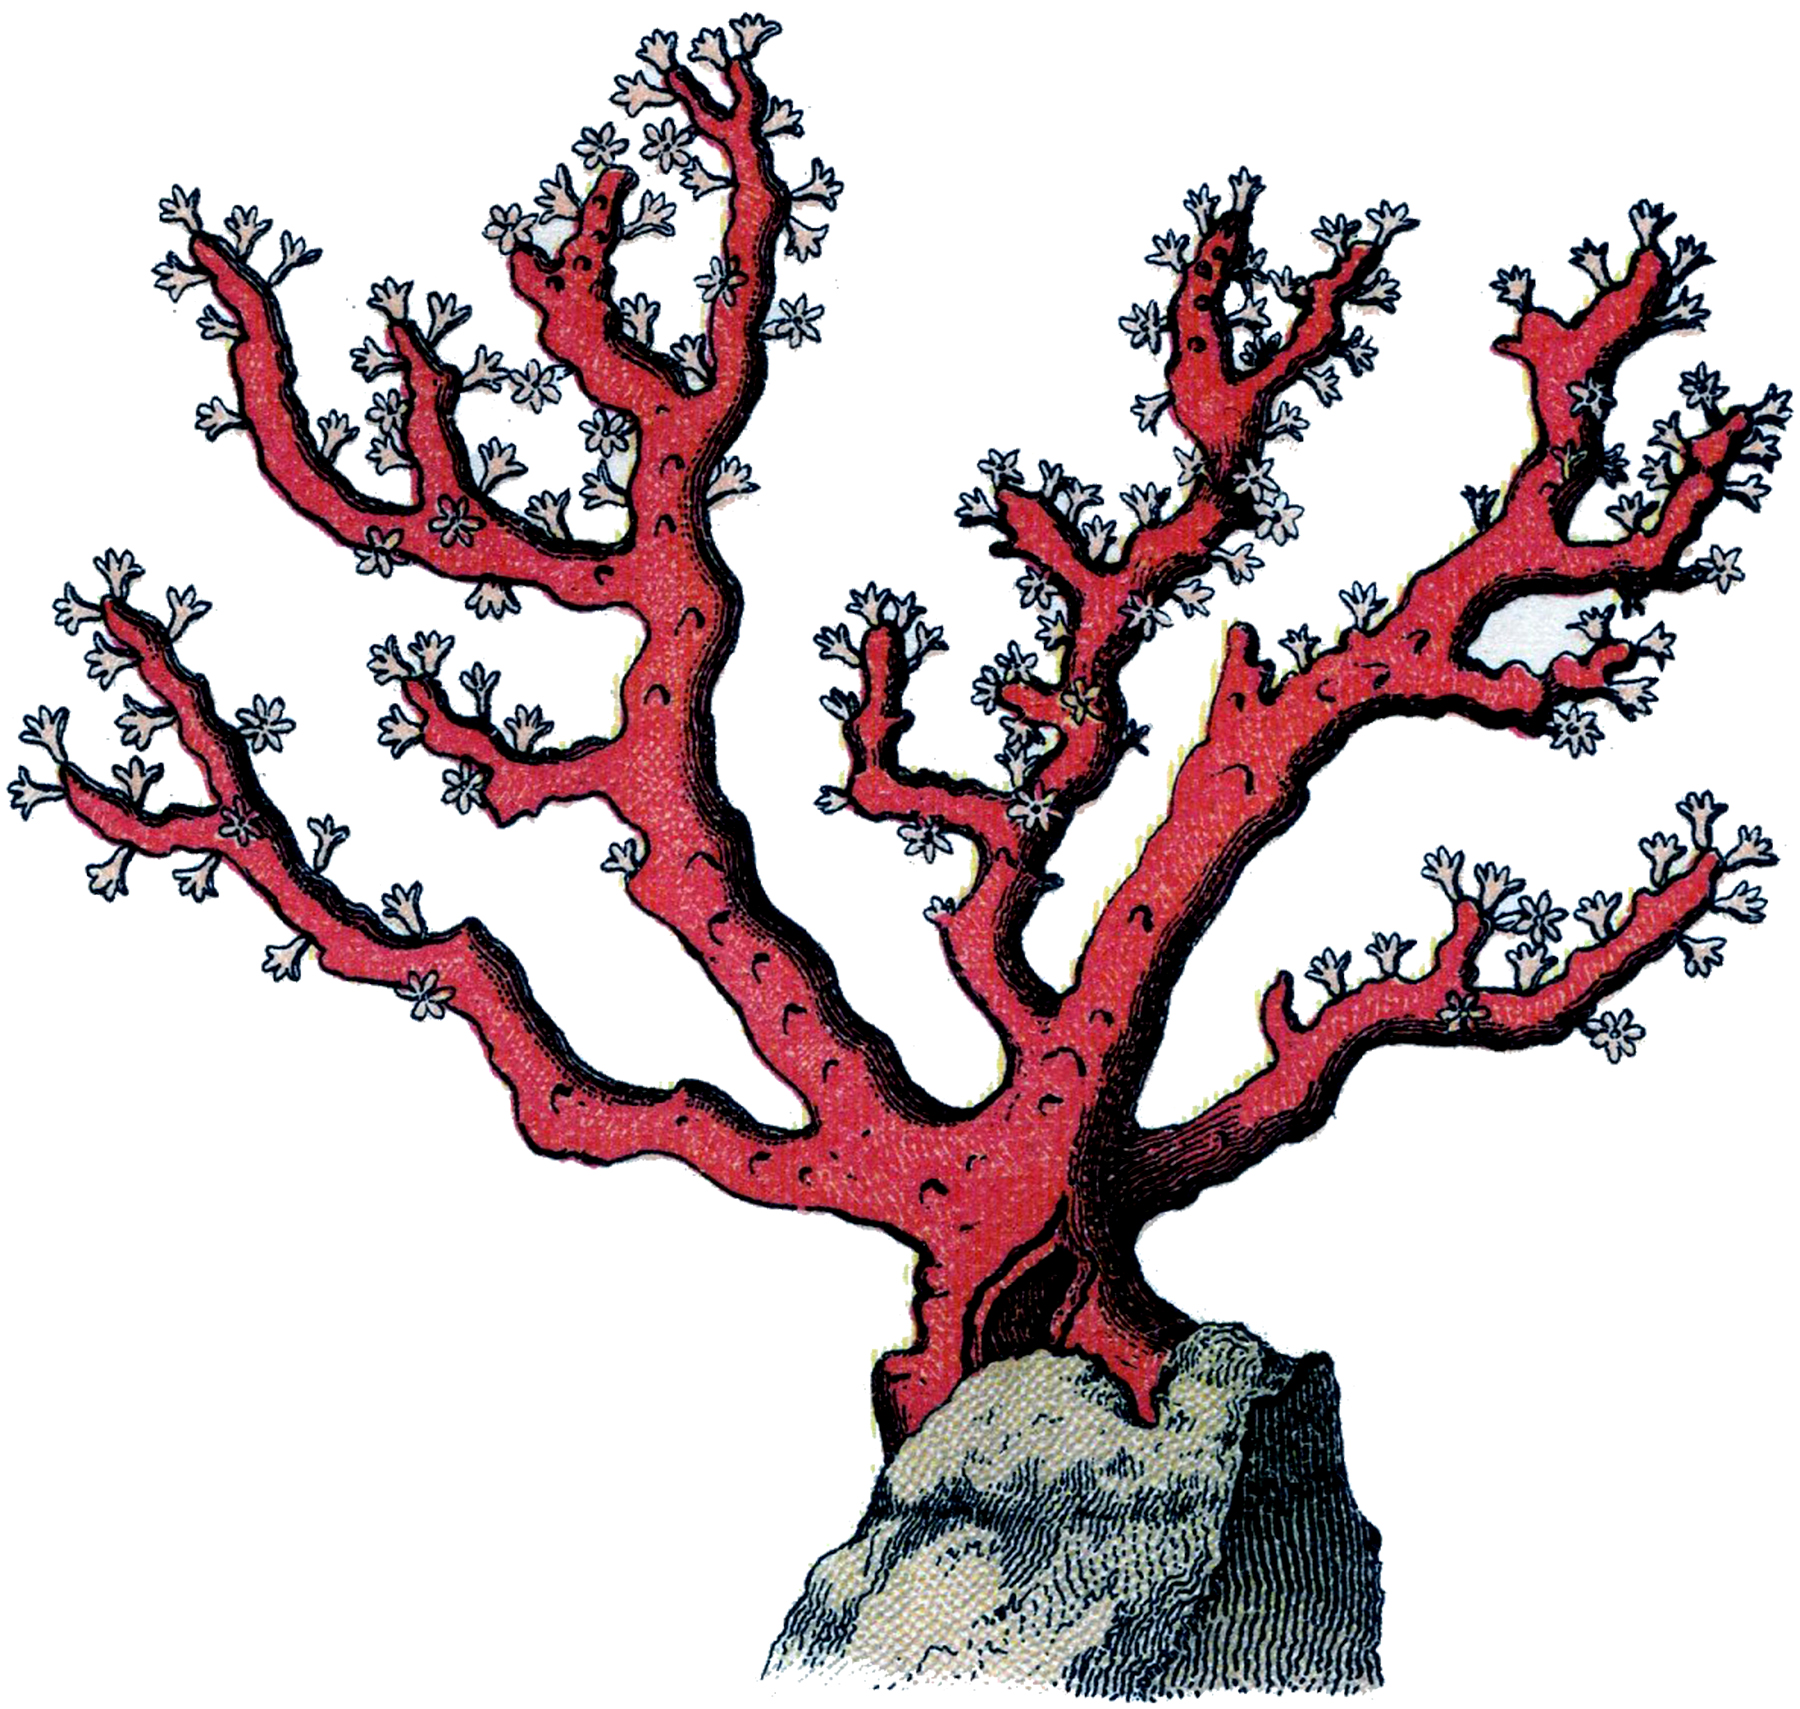 Gnome Garden: Fabulous Vintage Red Coral Image!